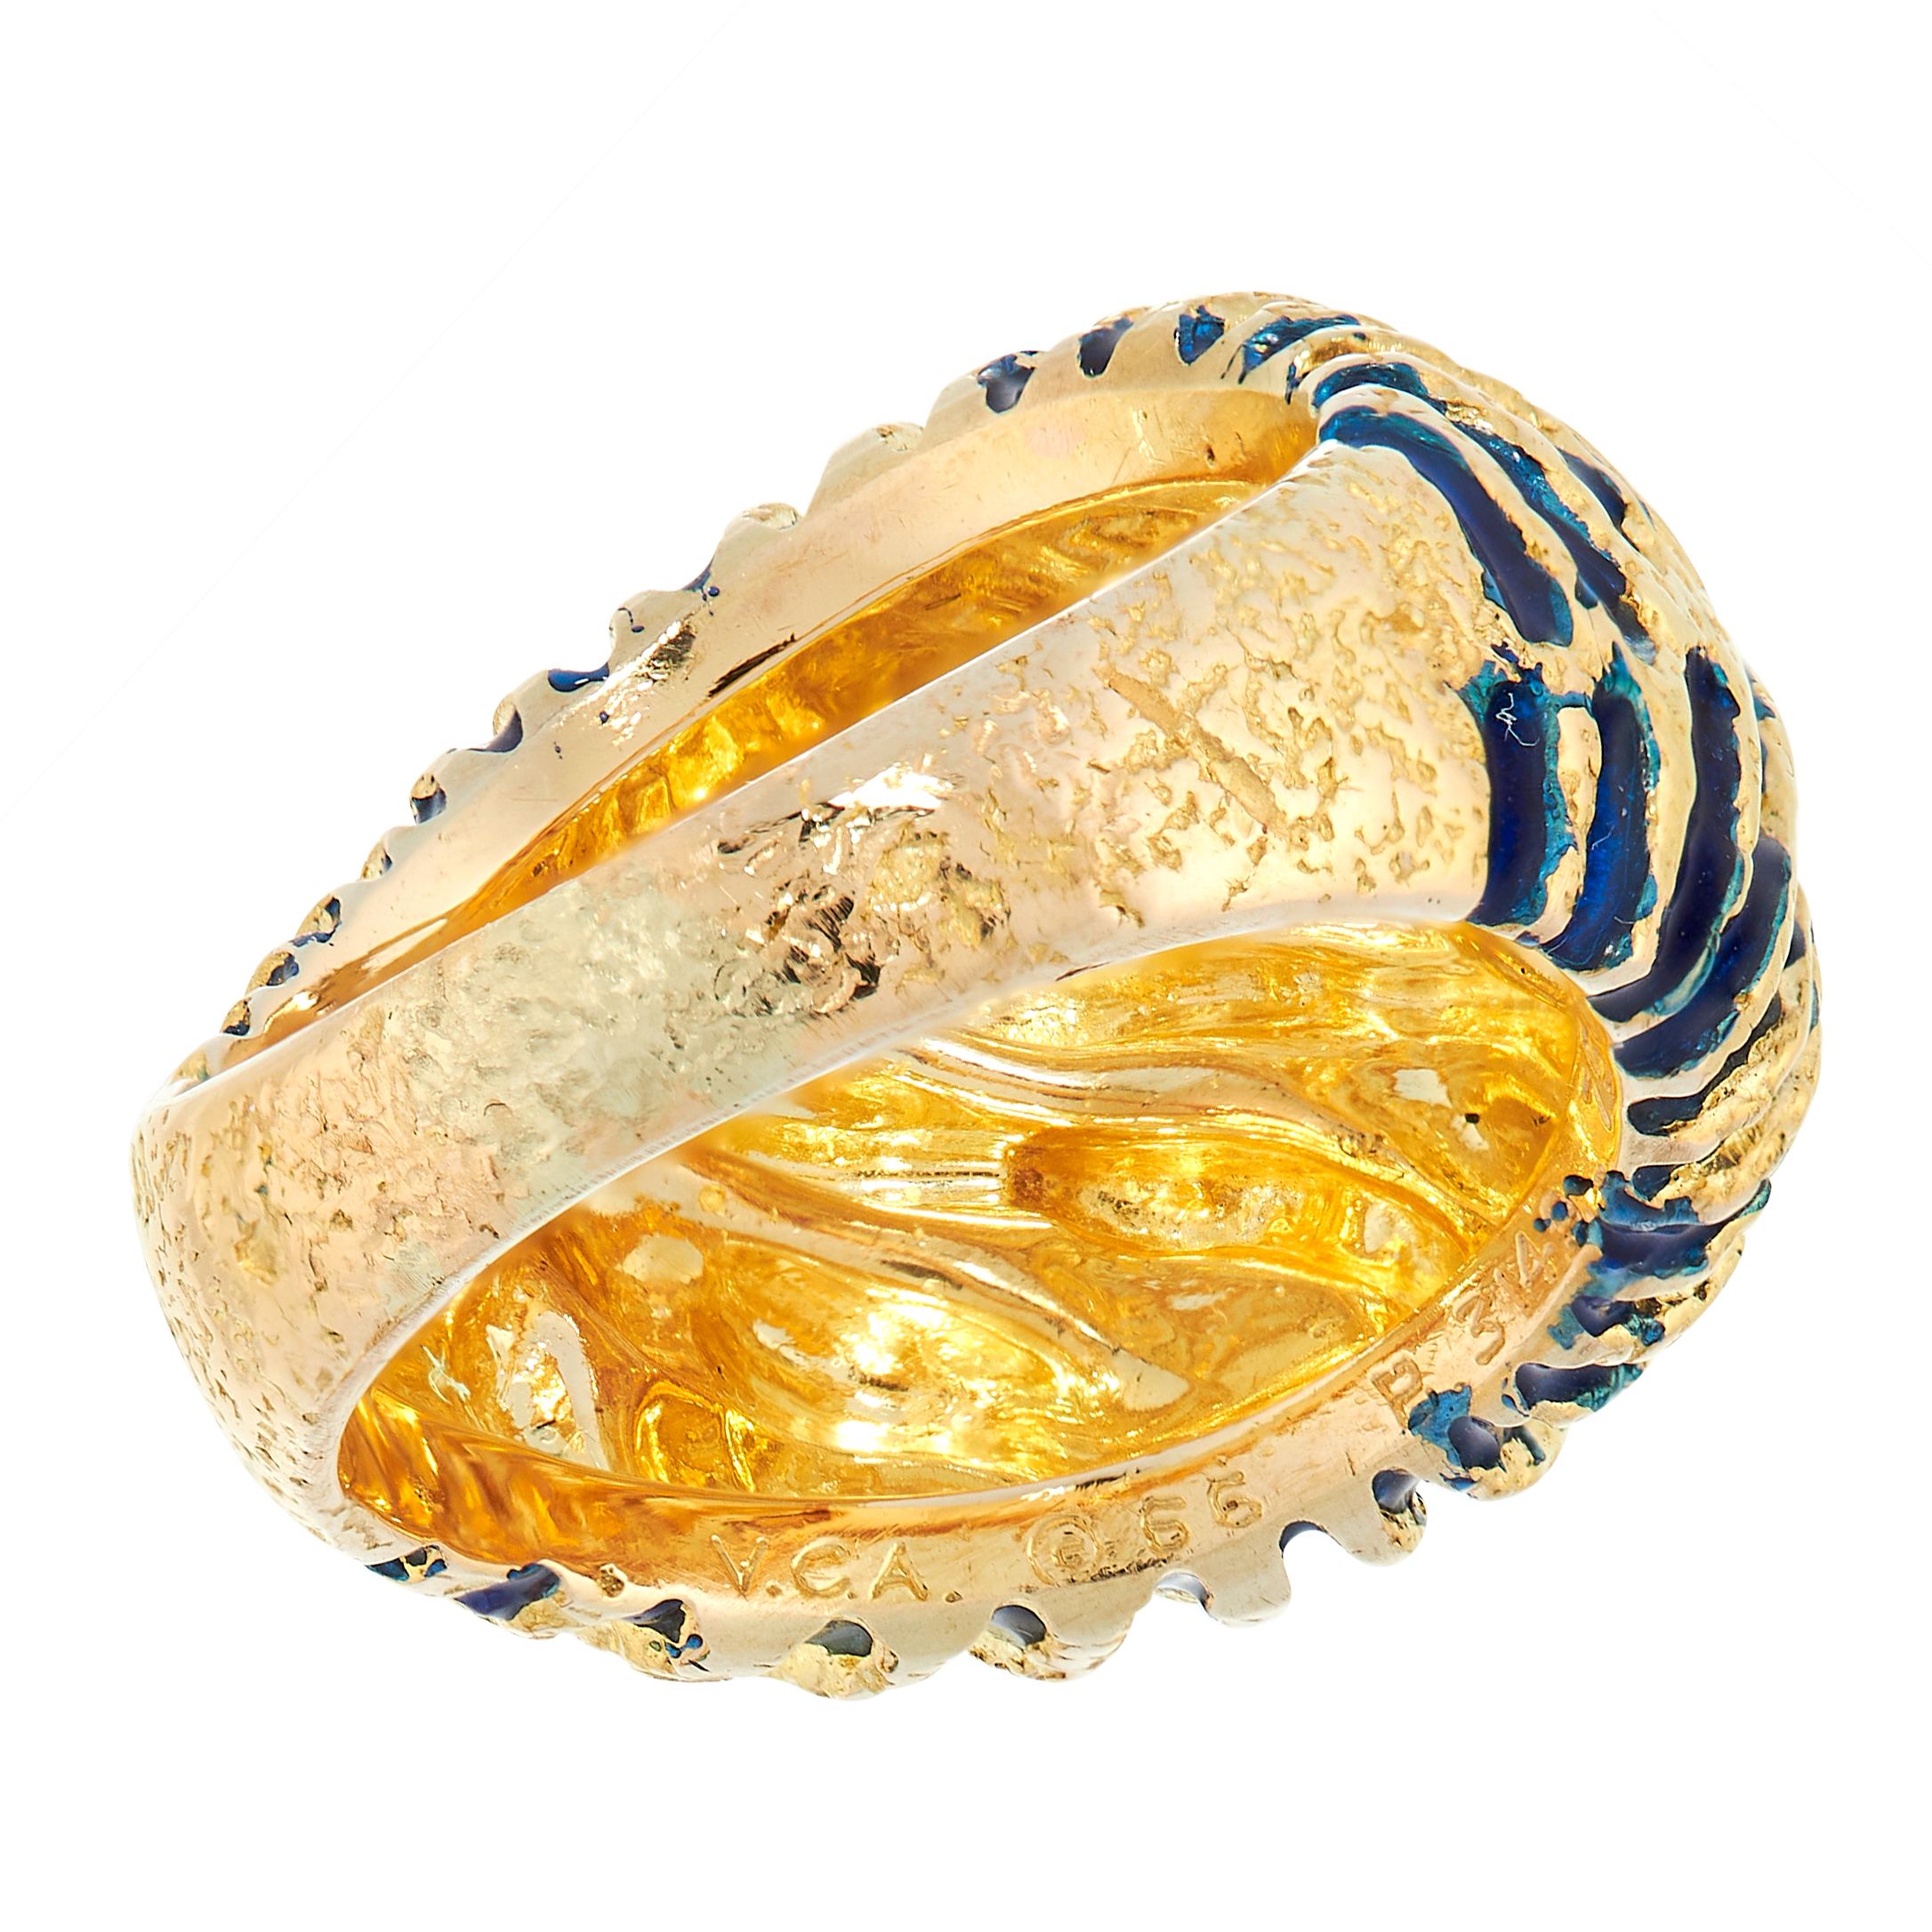 ENAMEL RING, VAN CLEEF & ARPELS in bombe form, the surface textured with alternating twisted gold - Image 3 of 3